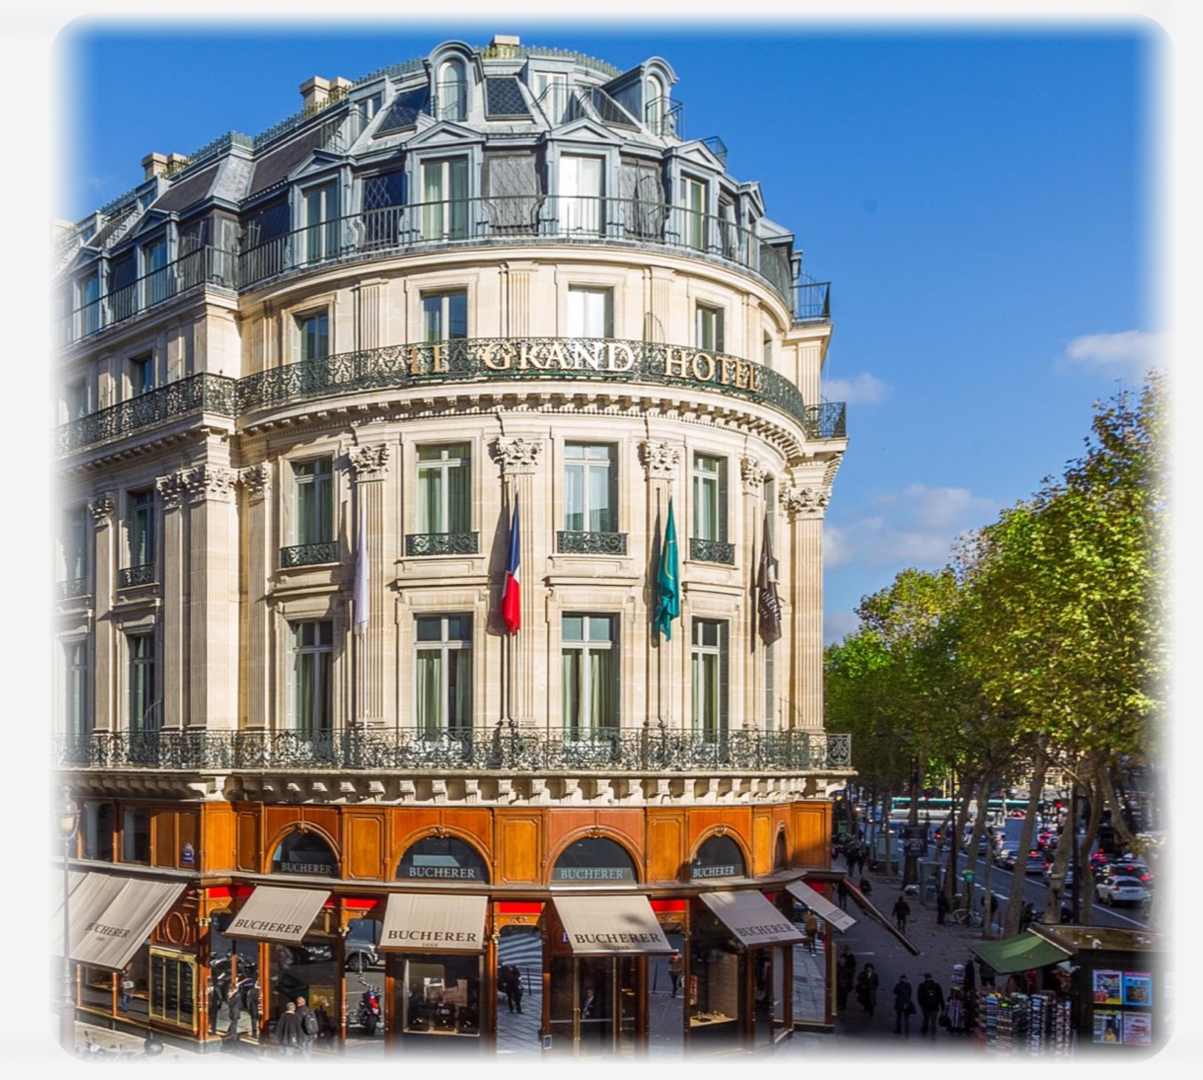 Details - Dates: 14-15 June 2018Location: InterContinental Paris - Le GrandRegister for Europa 2019